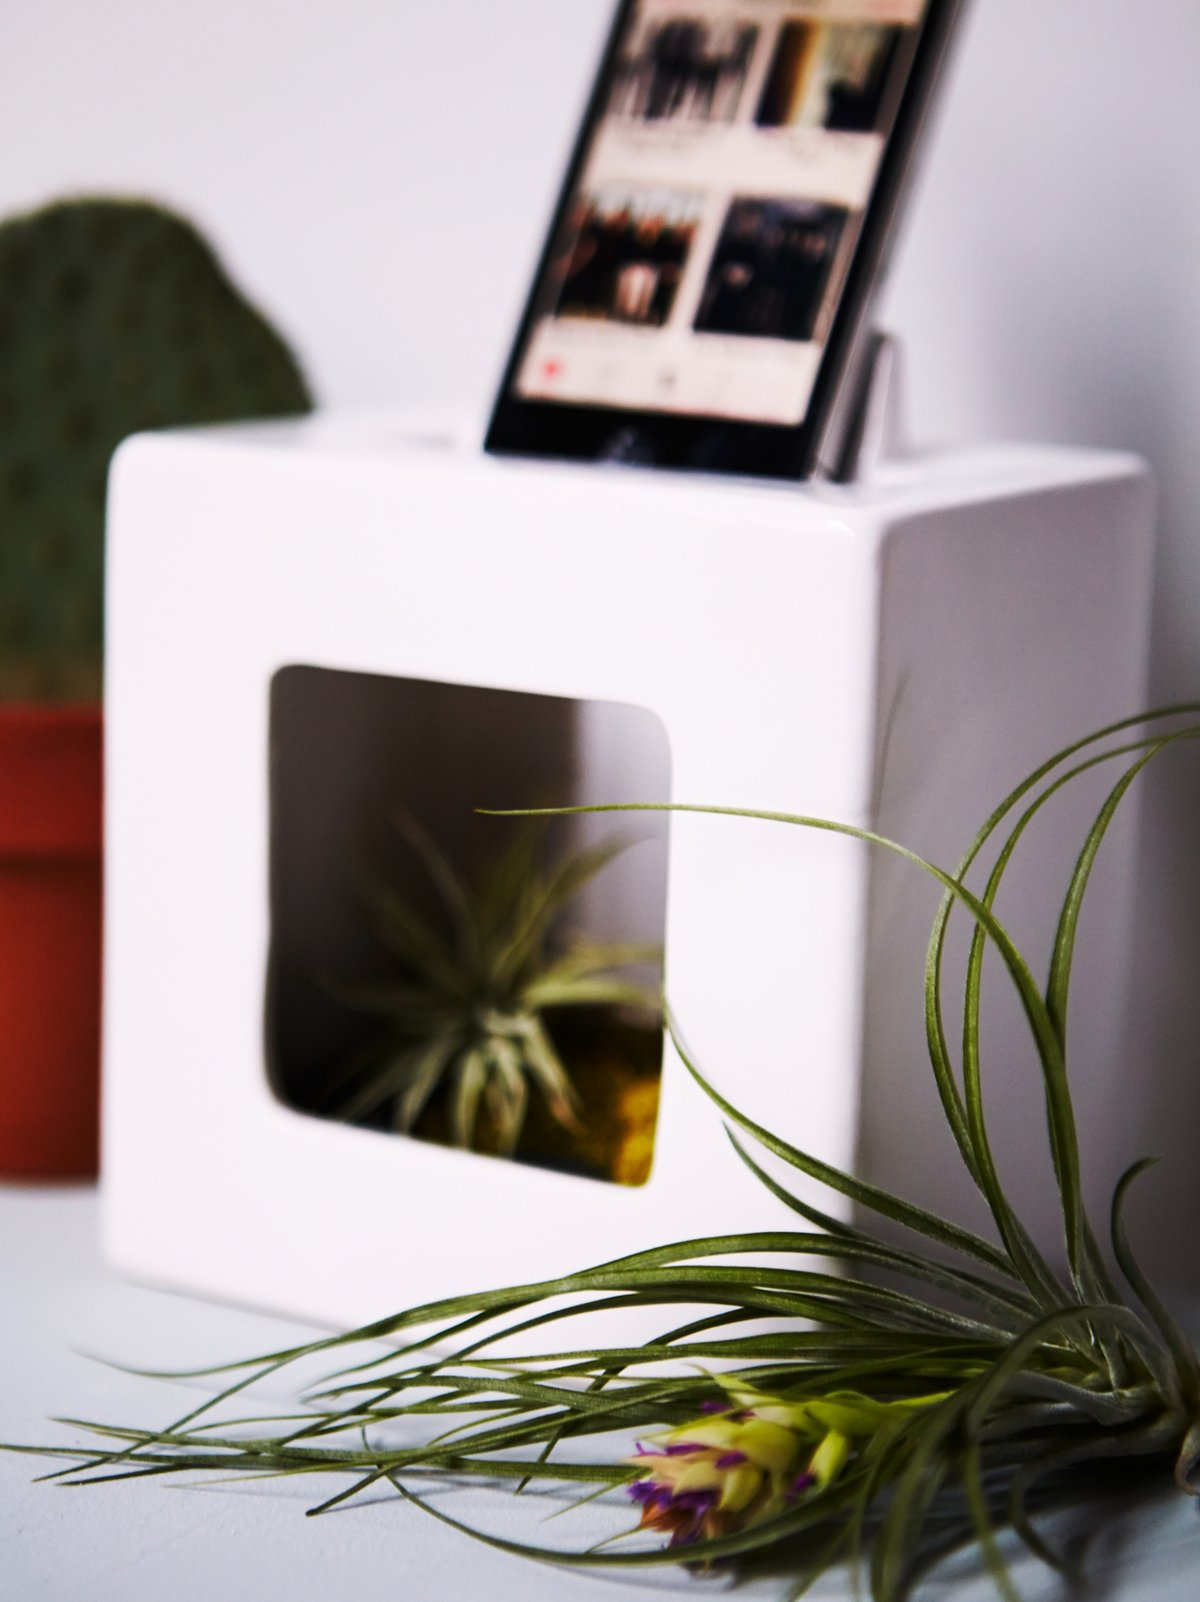 iBloom Phone Amplifier